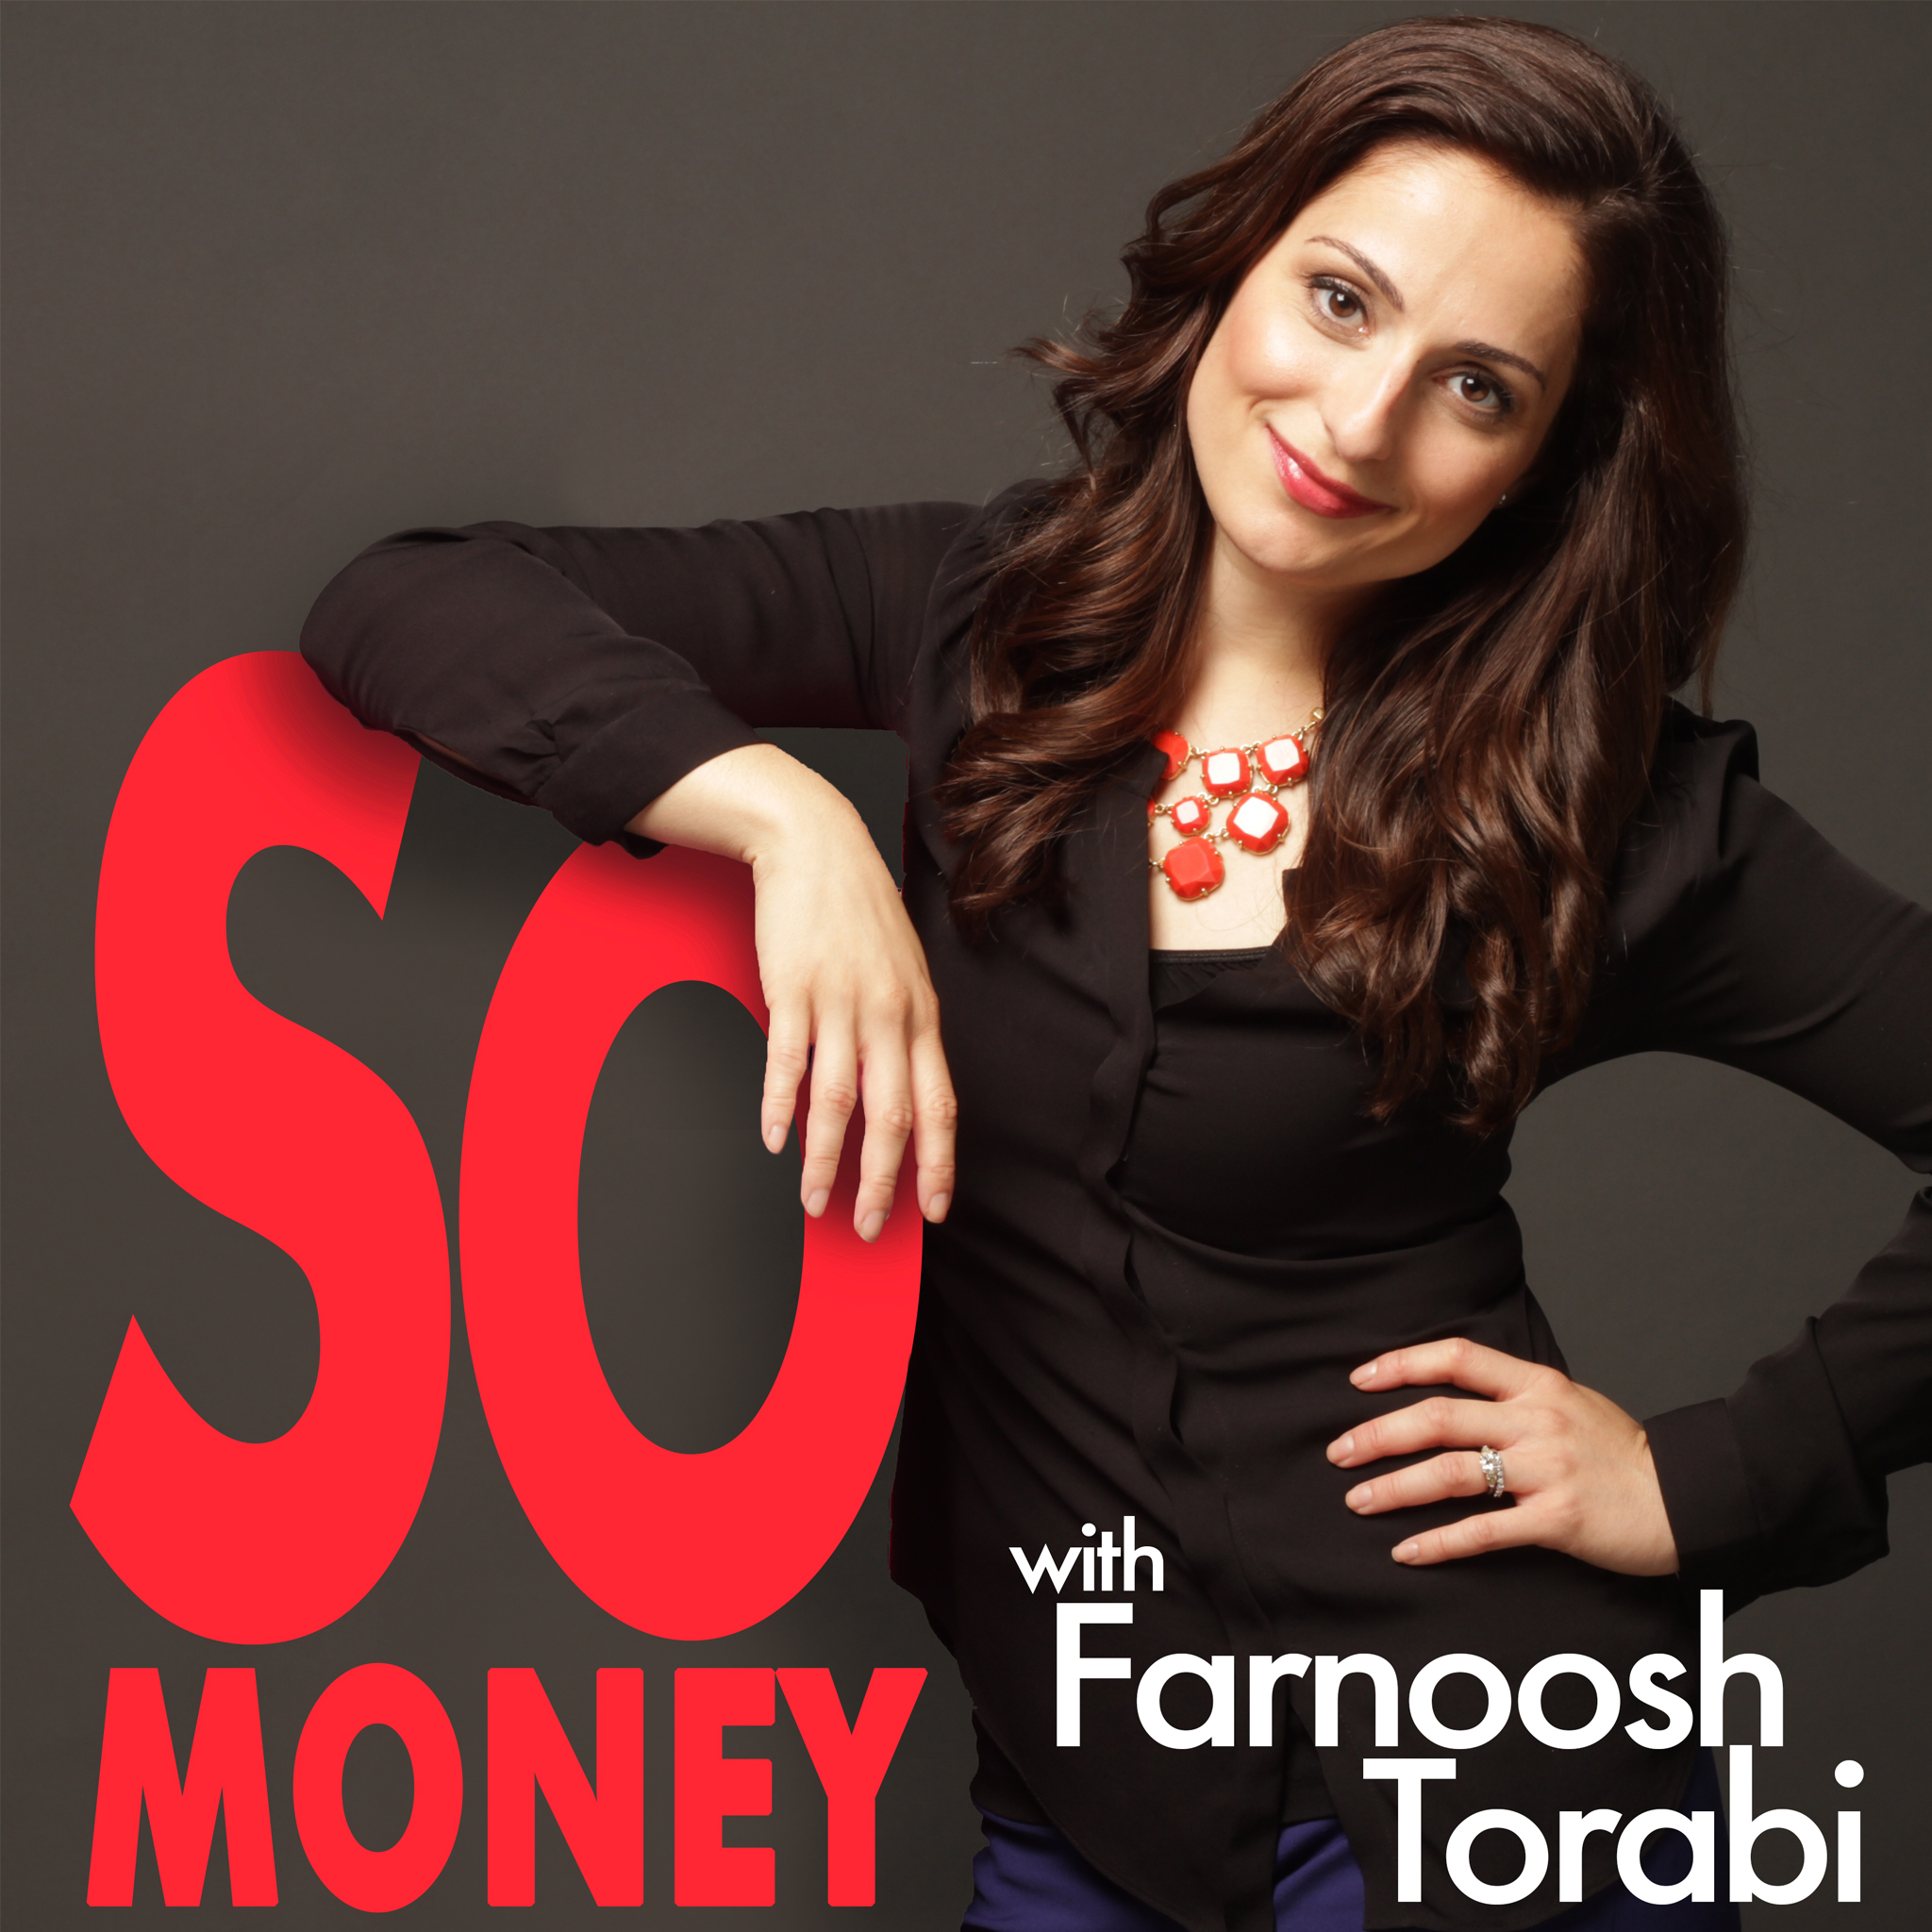 So Money with Farnoosh Torabi featuring Tonya Rapley - There is nothing that I love more than a success story. Especially if it someone that I can relate to. Were you broke and now you're not? How? Tell me everything!That is what you're going to get with this episdoe featuring tonya rapley.